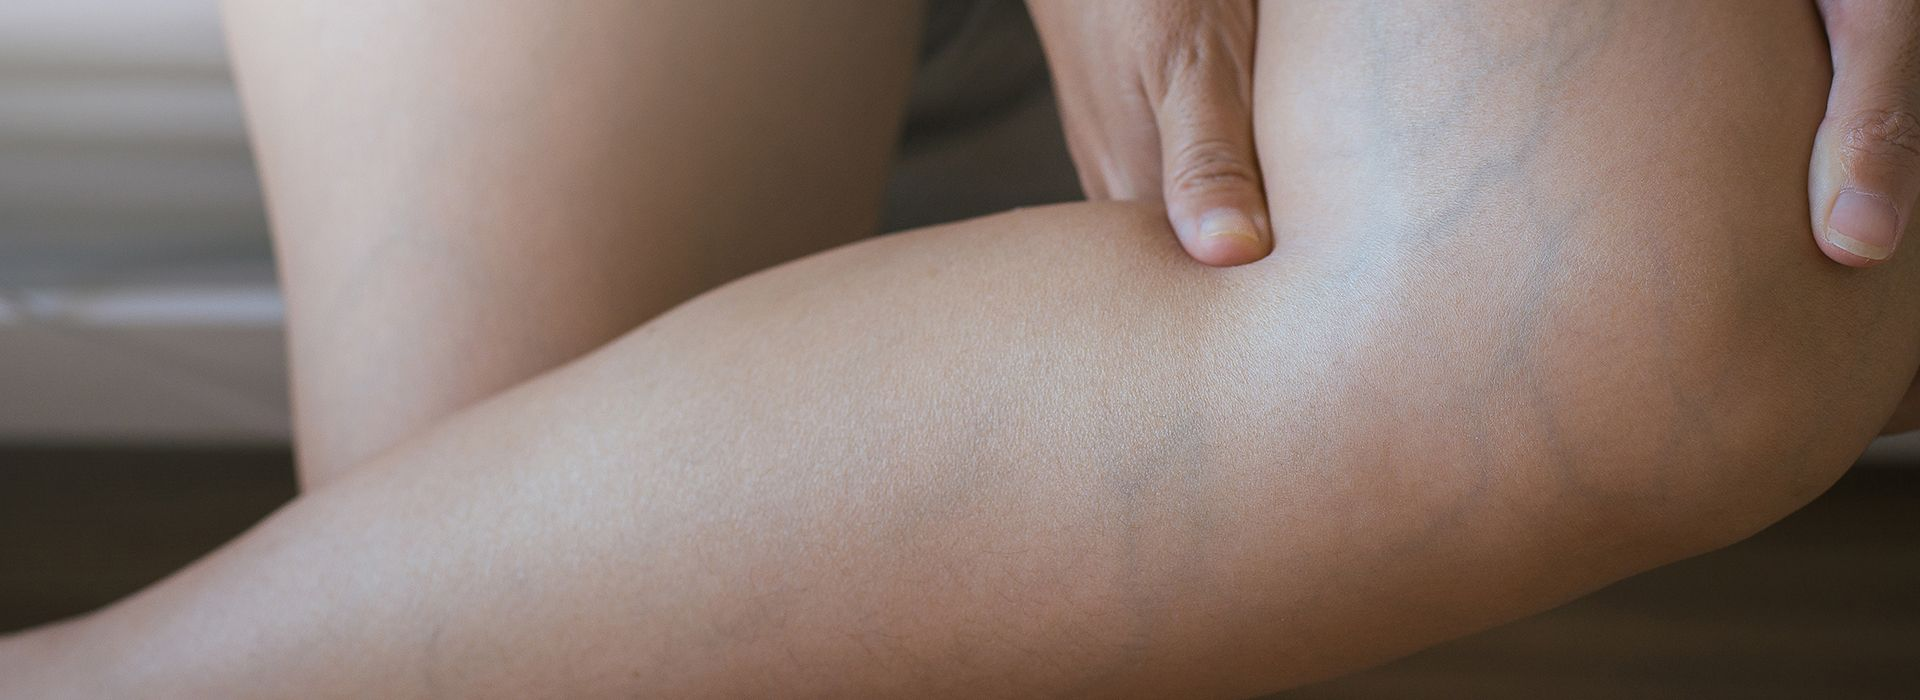 "Do you have bulging varicose veins? If so, you might be asking yourself, ""how can I find the best comprehensive varicose veins laser clinic?"" In this article, we give you that answer. Call to schedule a consultation on (646) 494-4043."